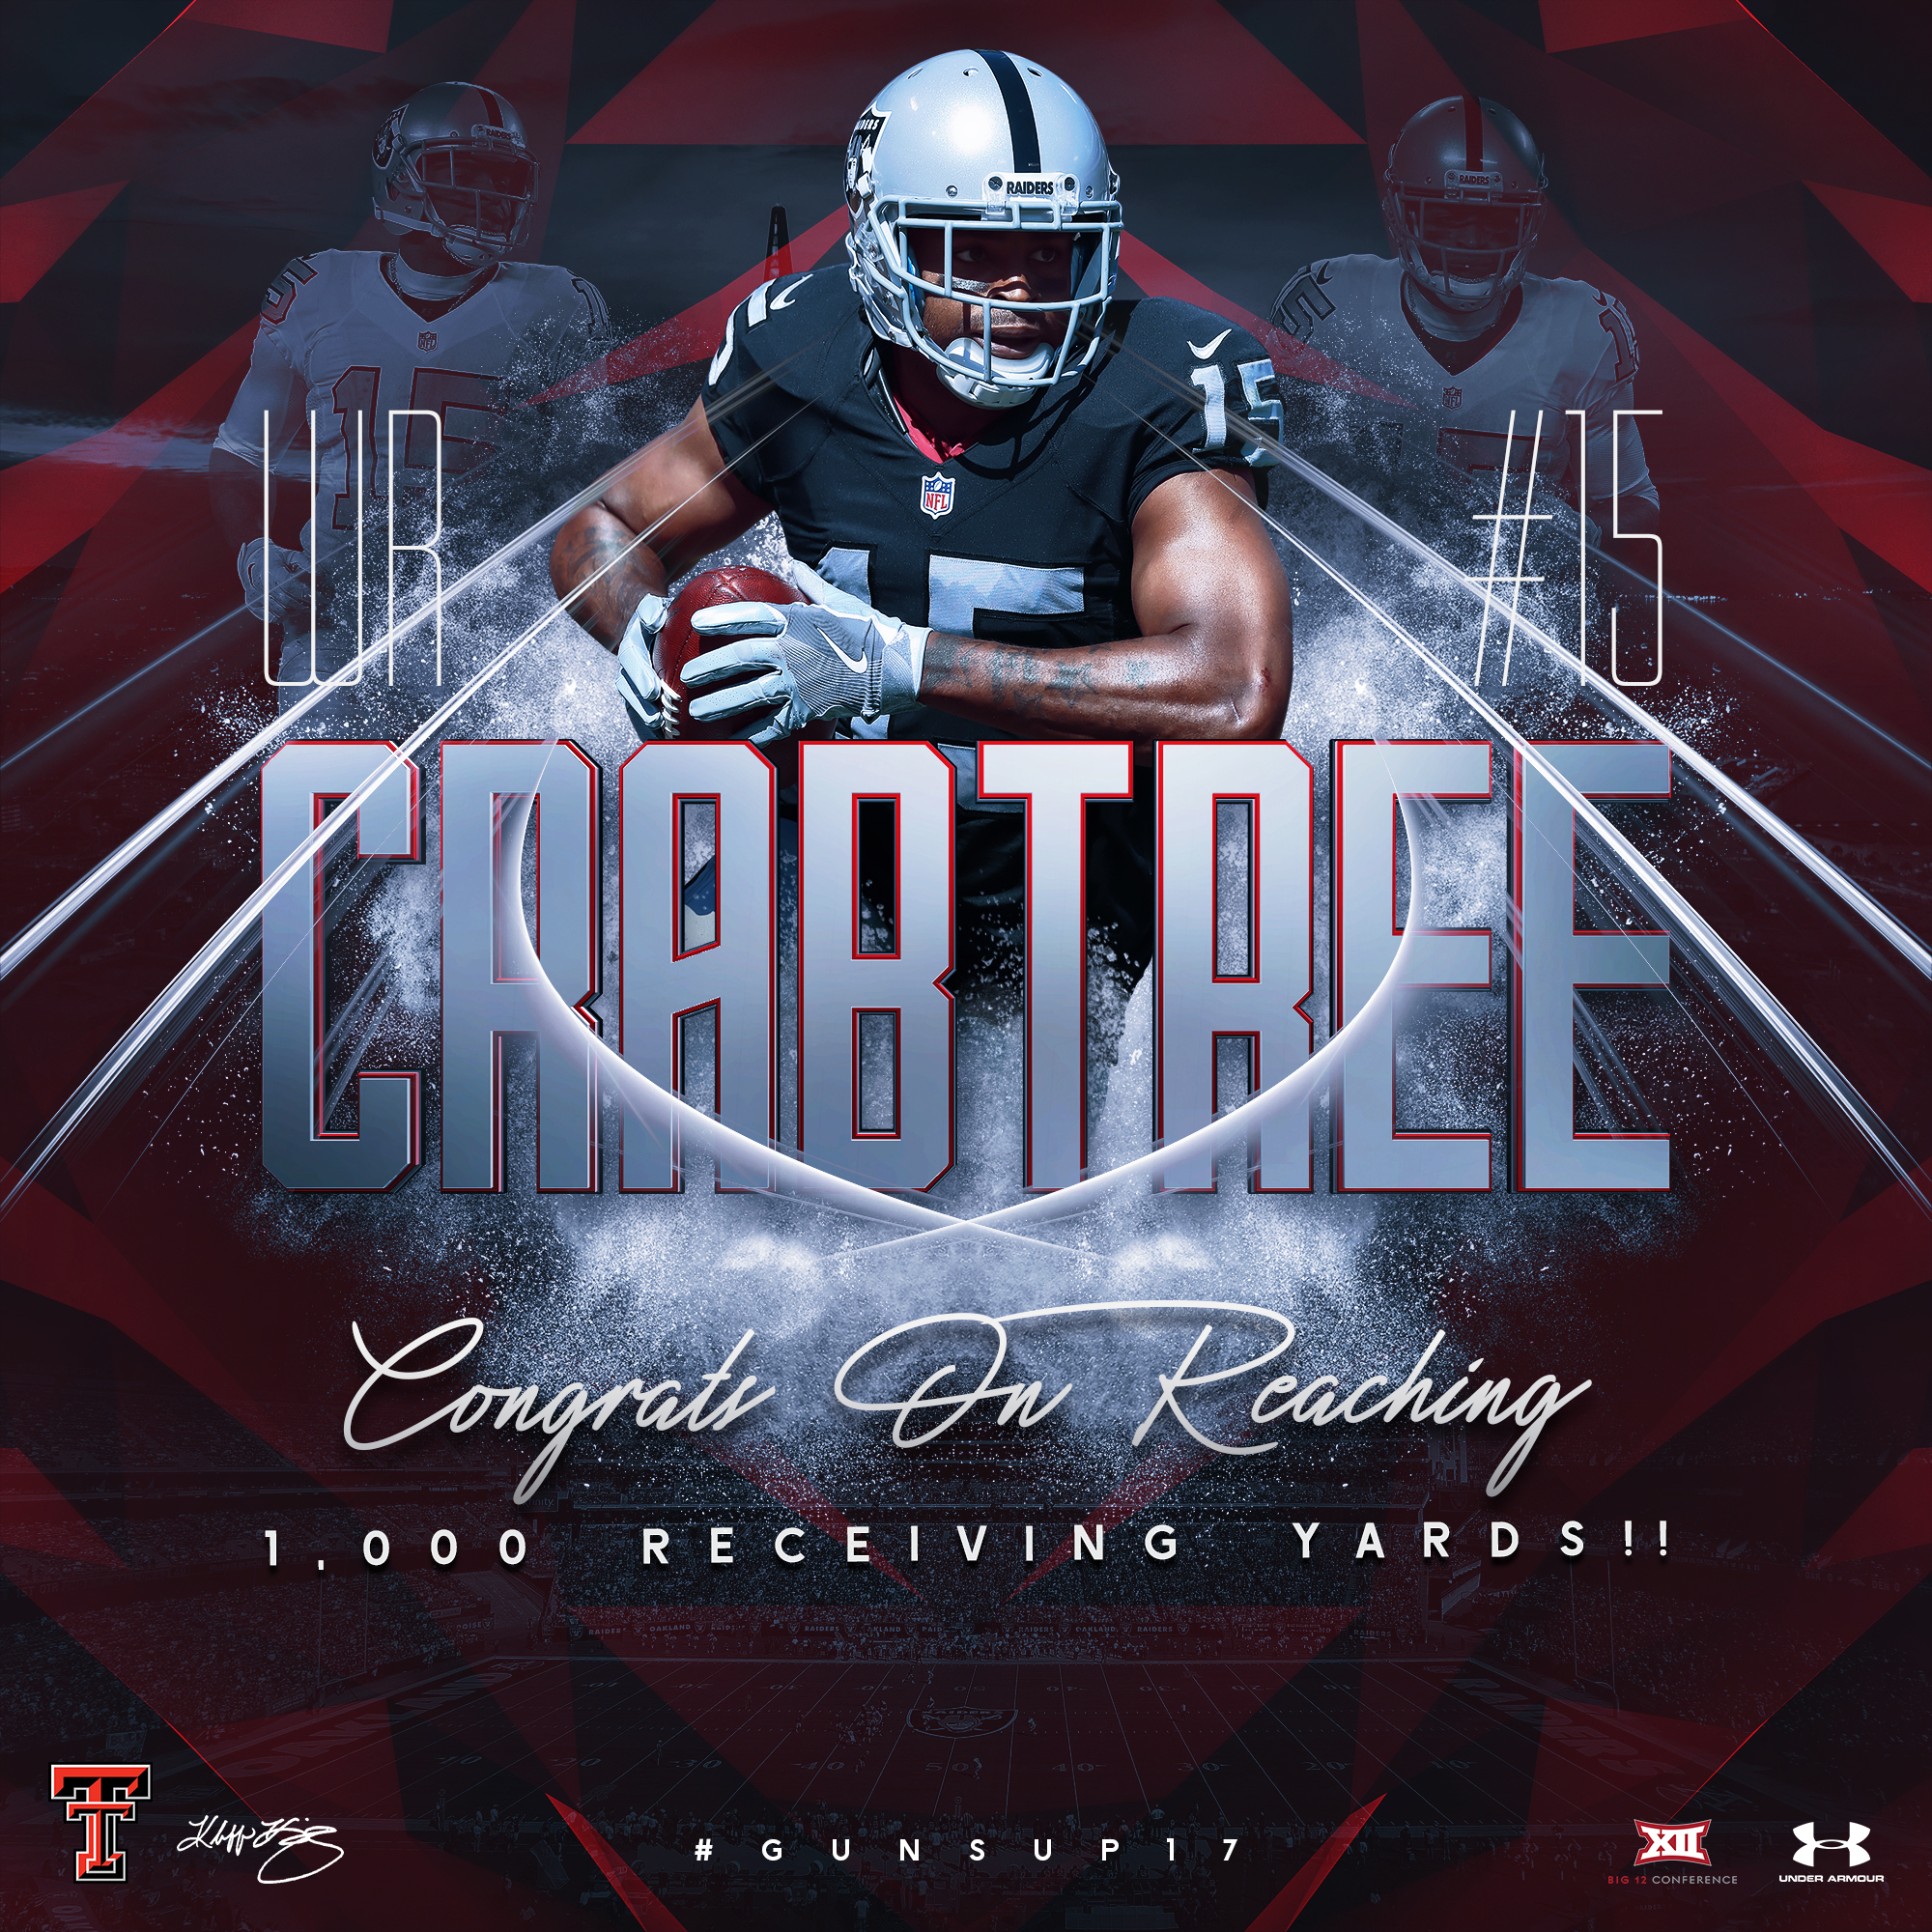 TTU Michael Crabtree 1K Receiving Yards